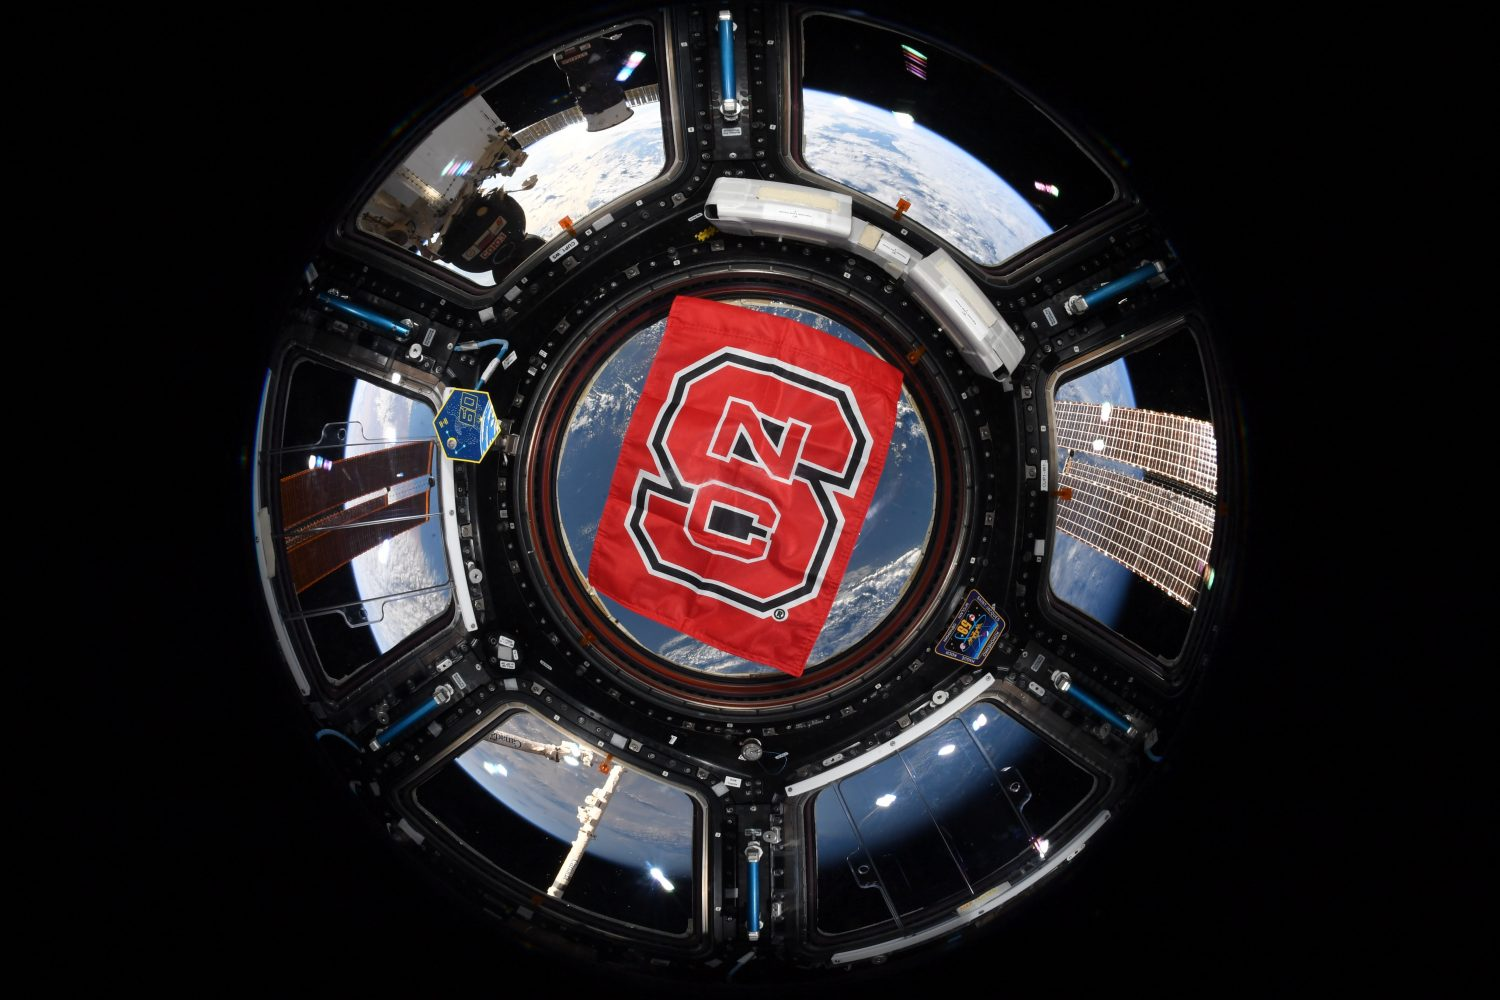 An NC State flag is displayed in the cupola of the International Space Station in orbit above the Earth.